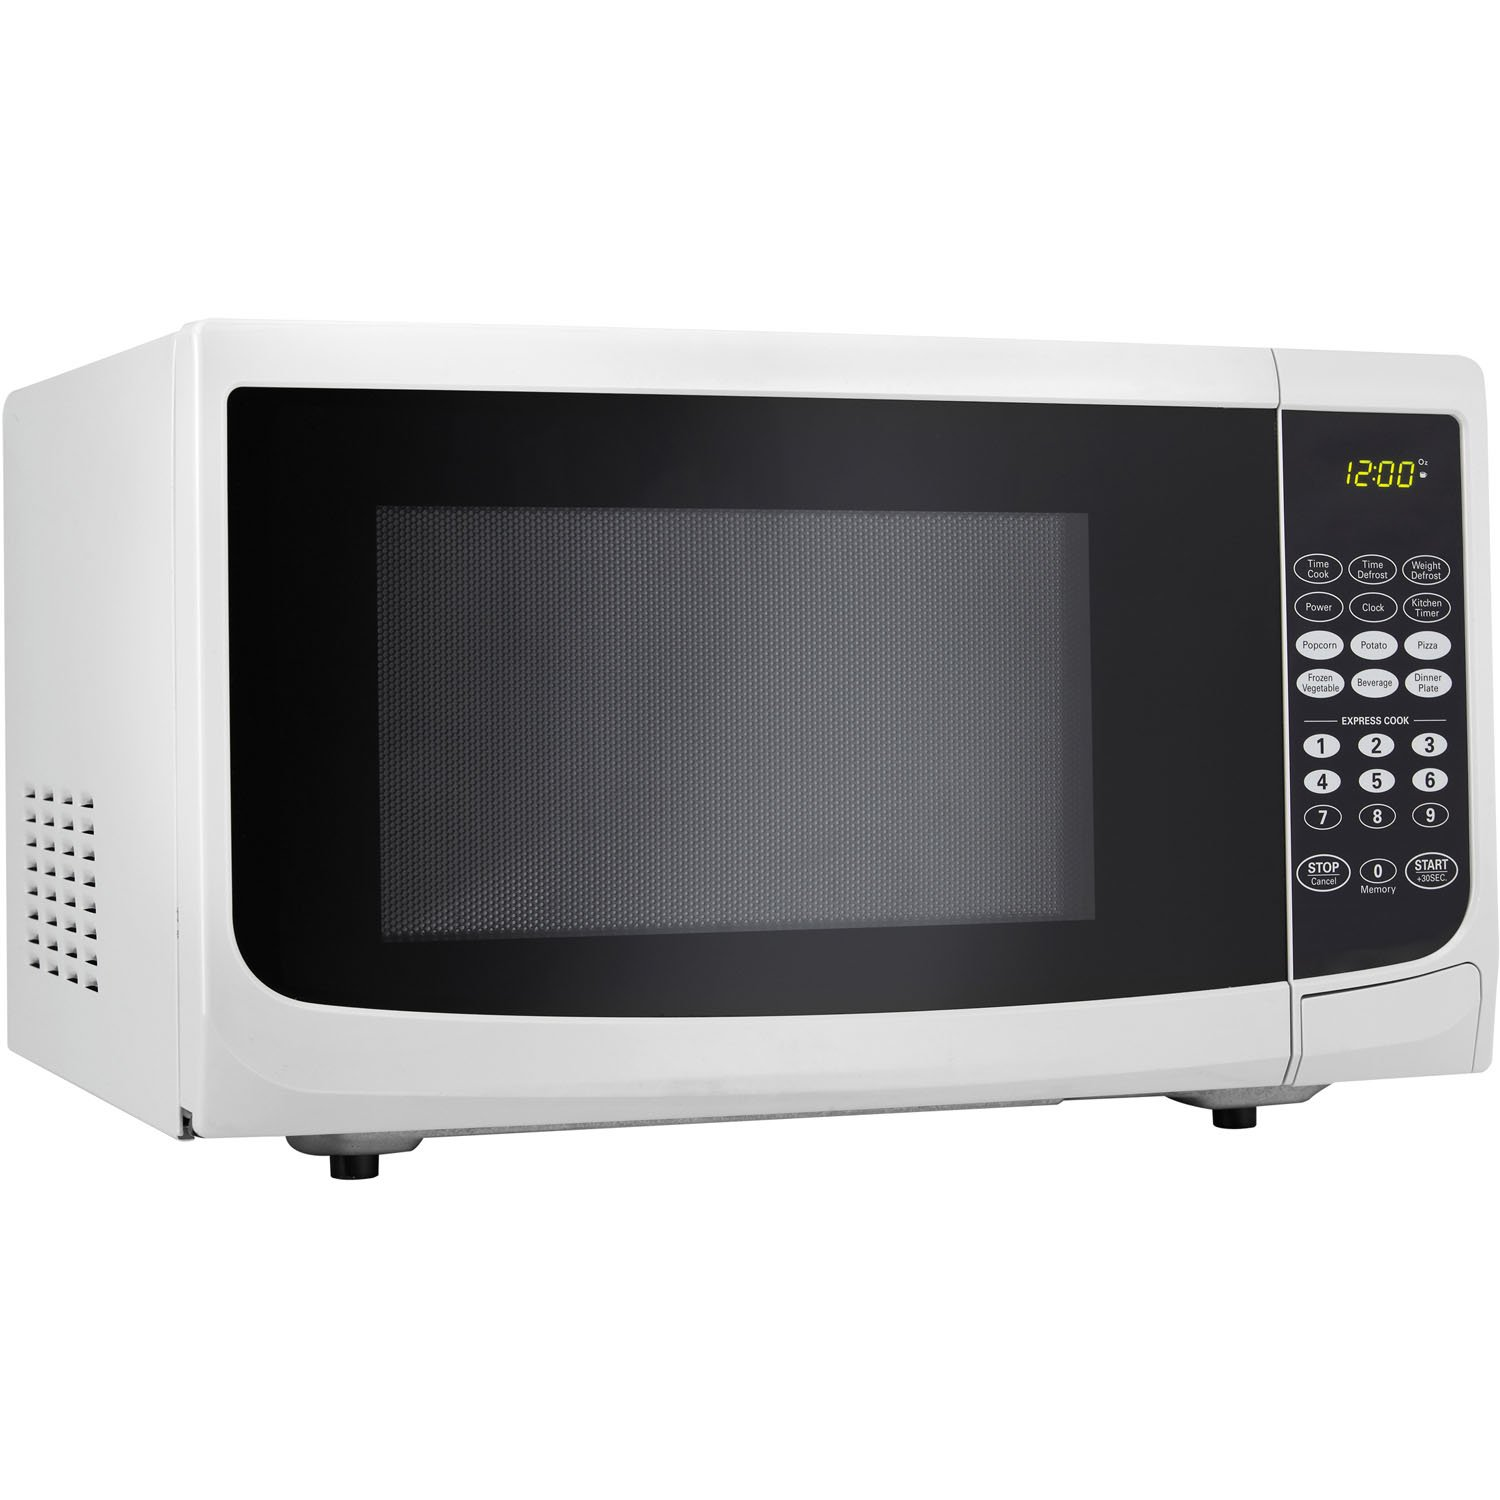 Small Countertop Microwaves 7 Cu Ft Automatic Stove Oven Microwave Countertop